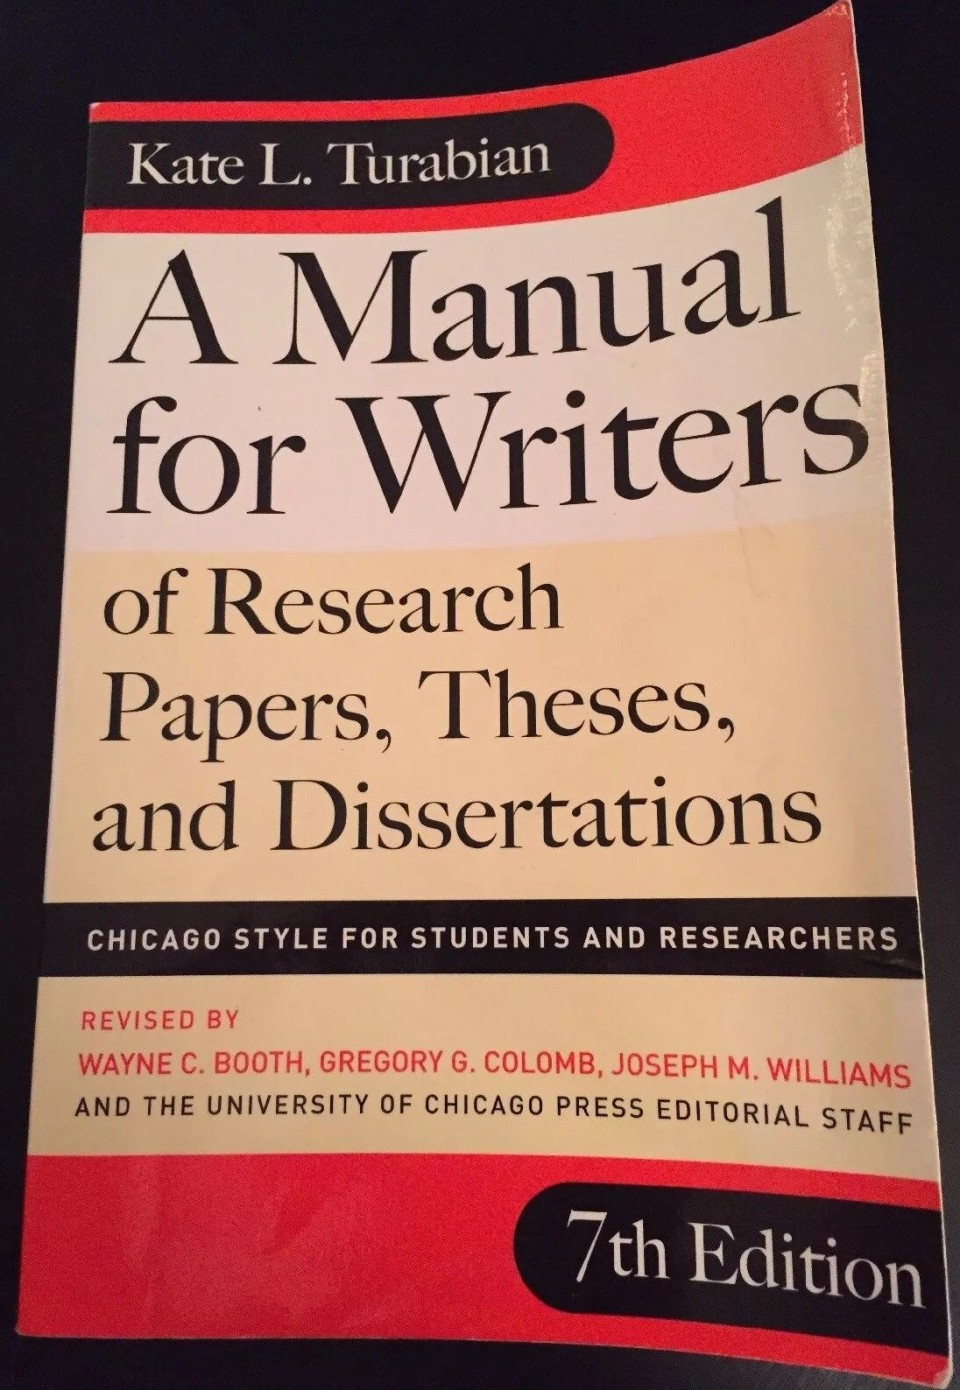 018 Research Paper Manual For Writers Of Papers Theses And Dissertations S Magnificent A Amazon 9th Edition Pdf 8th 13 960